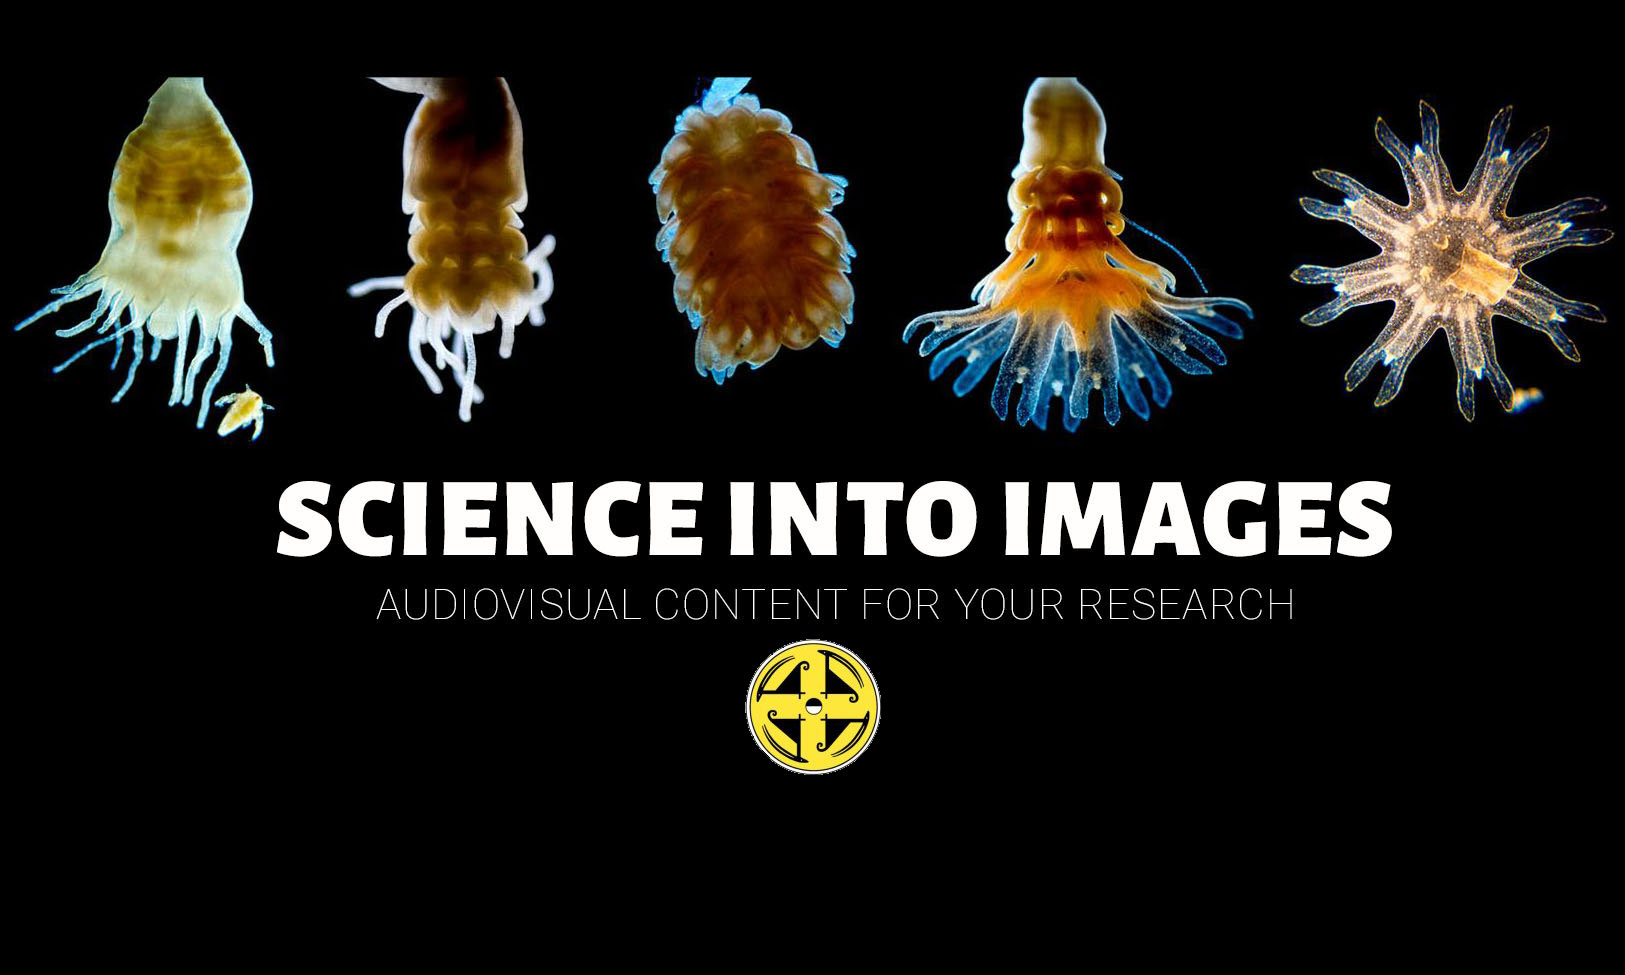 SCIENCE INTO IMAGES